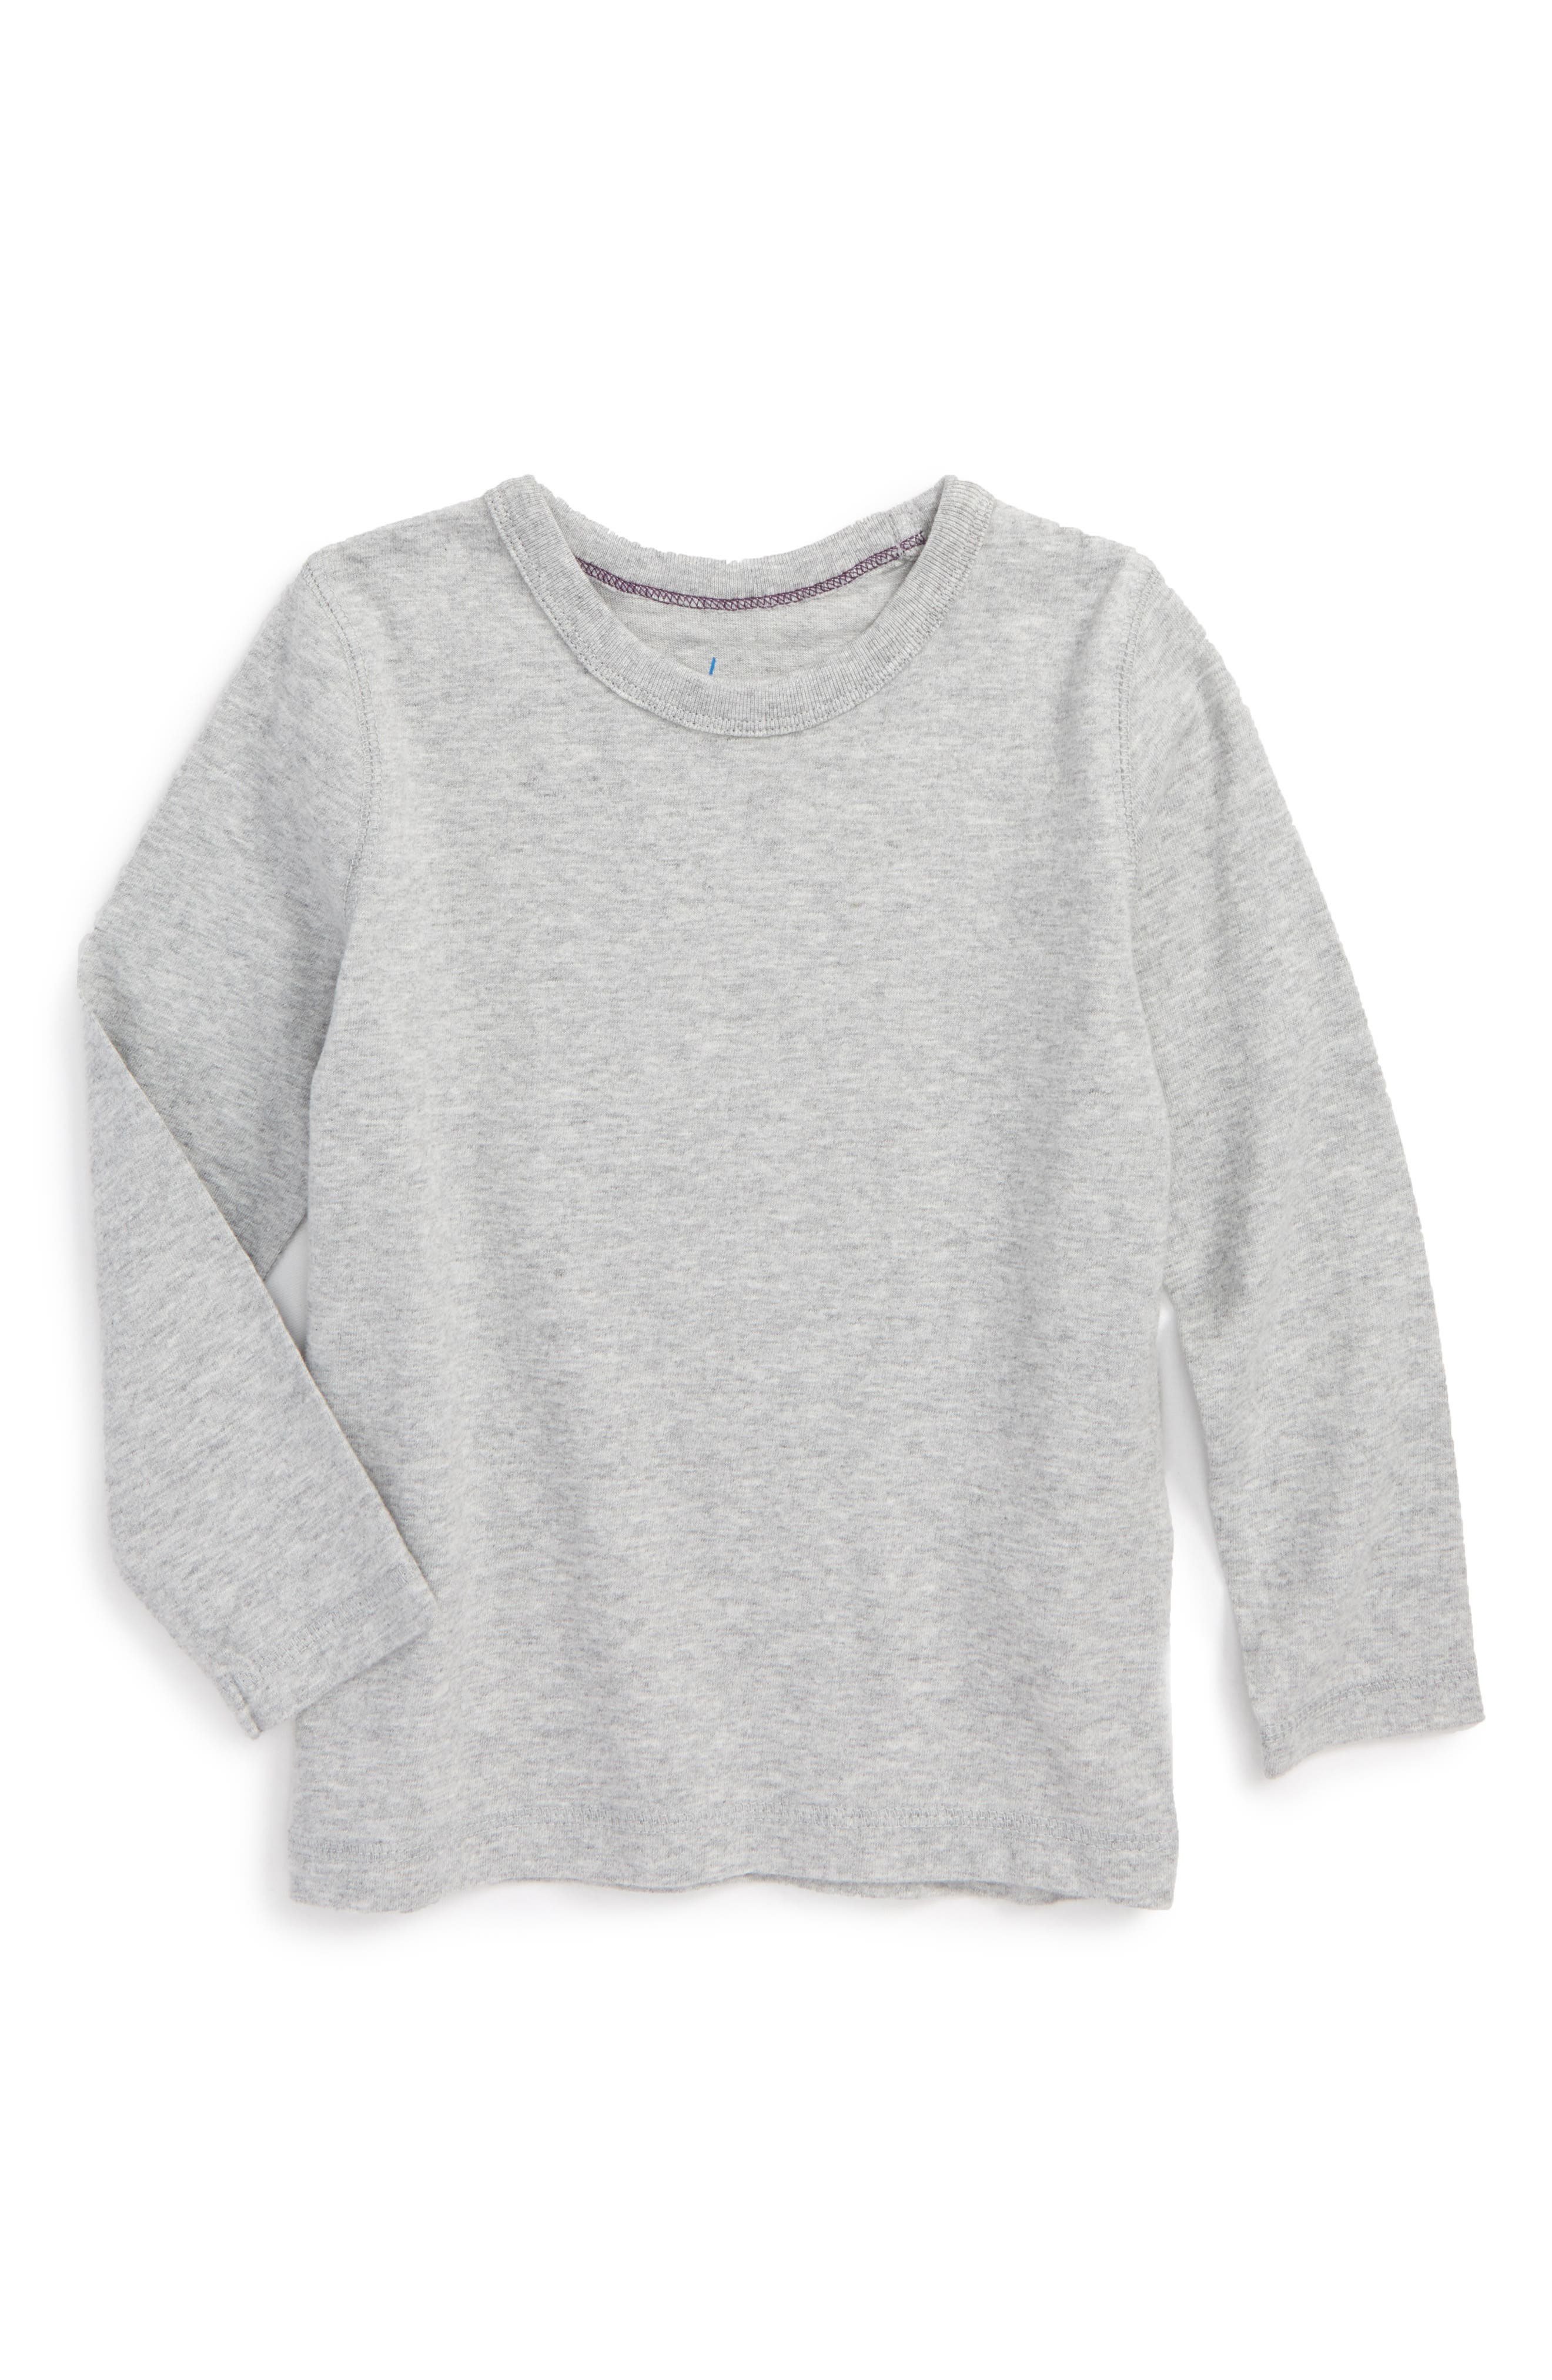 Supersoft Solid T-Shirt,                             Main thumbnail 1, color,                             062